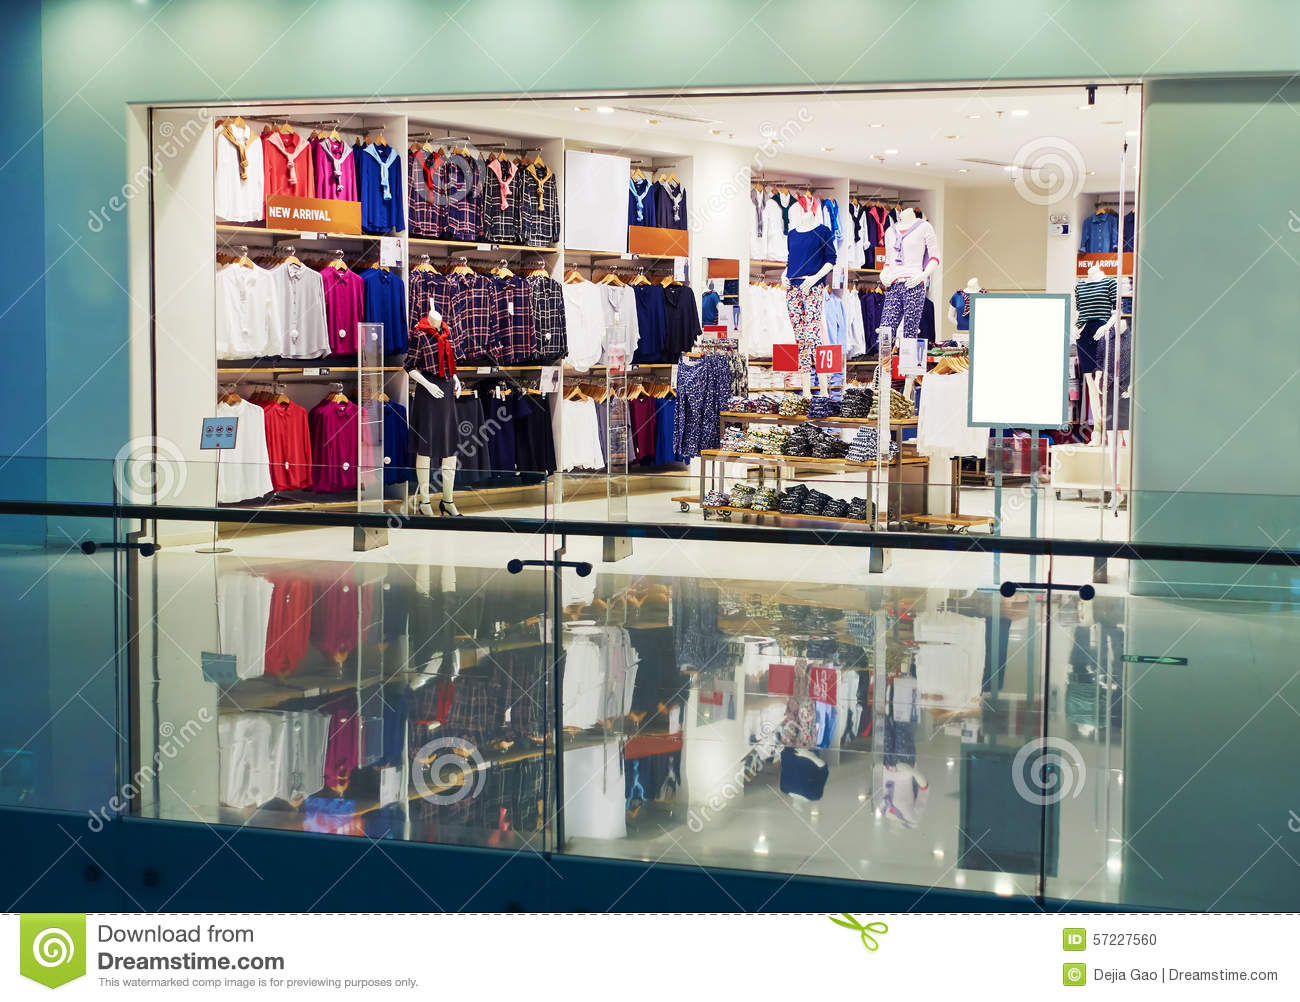 Dress clothes stores